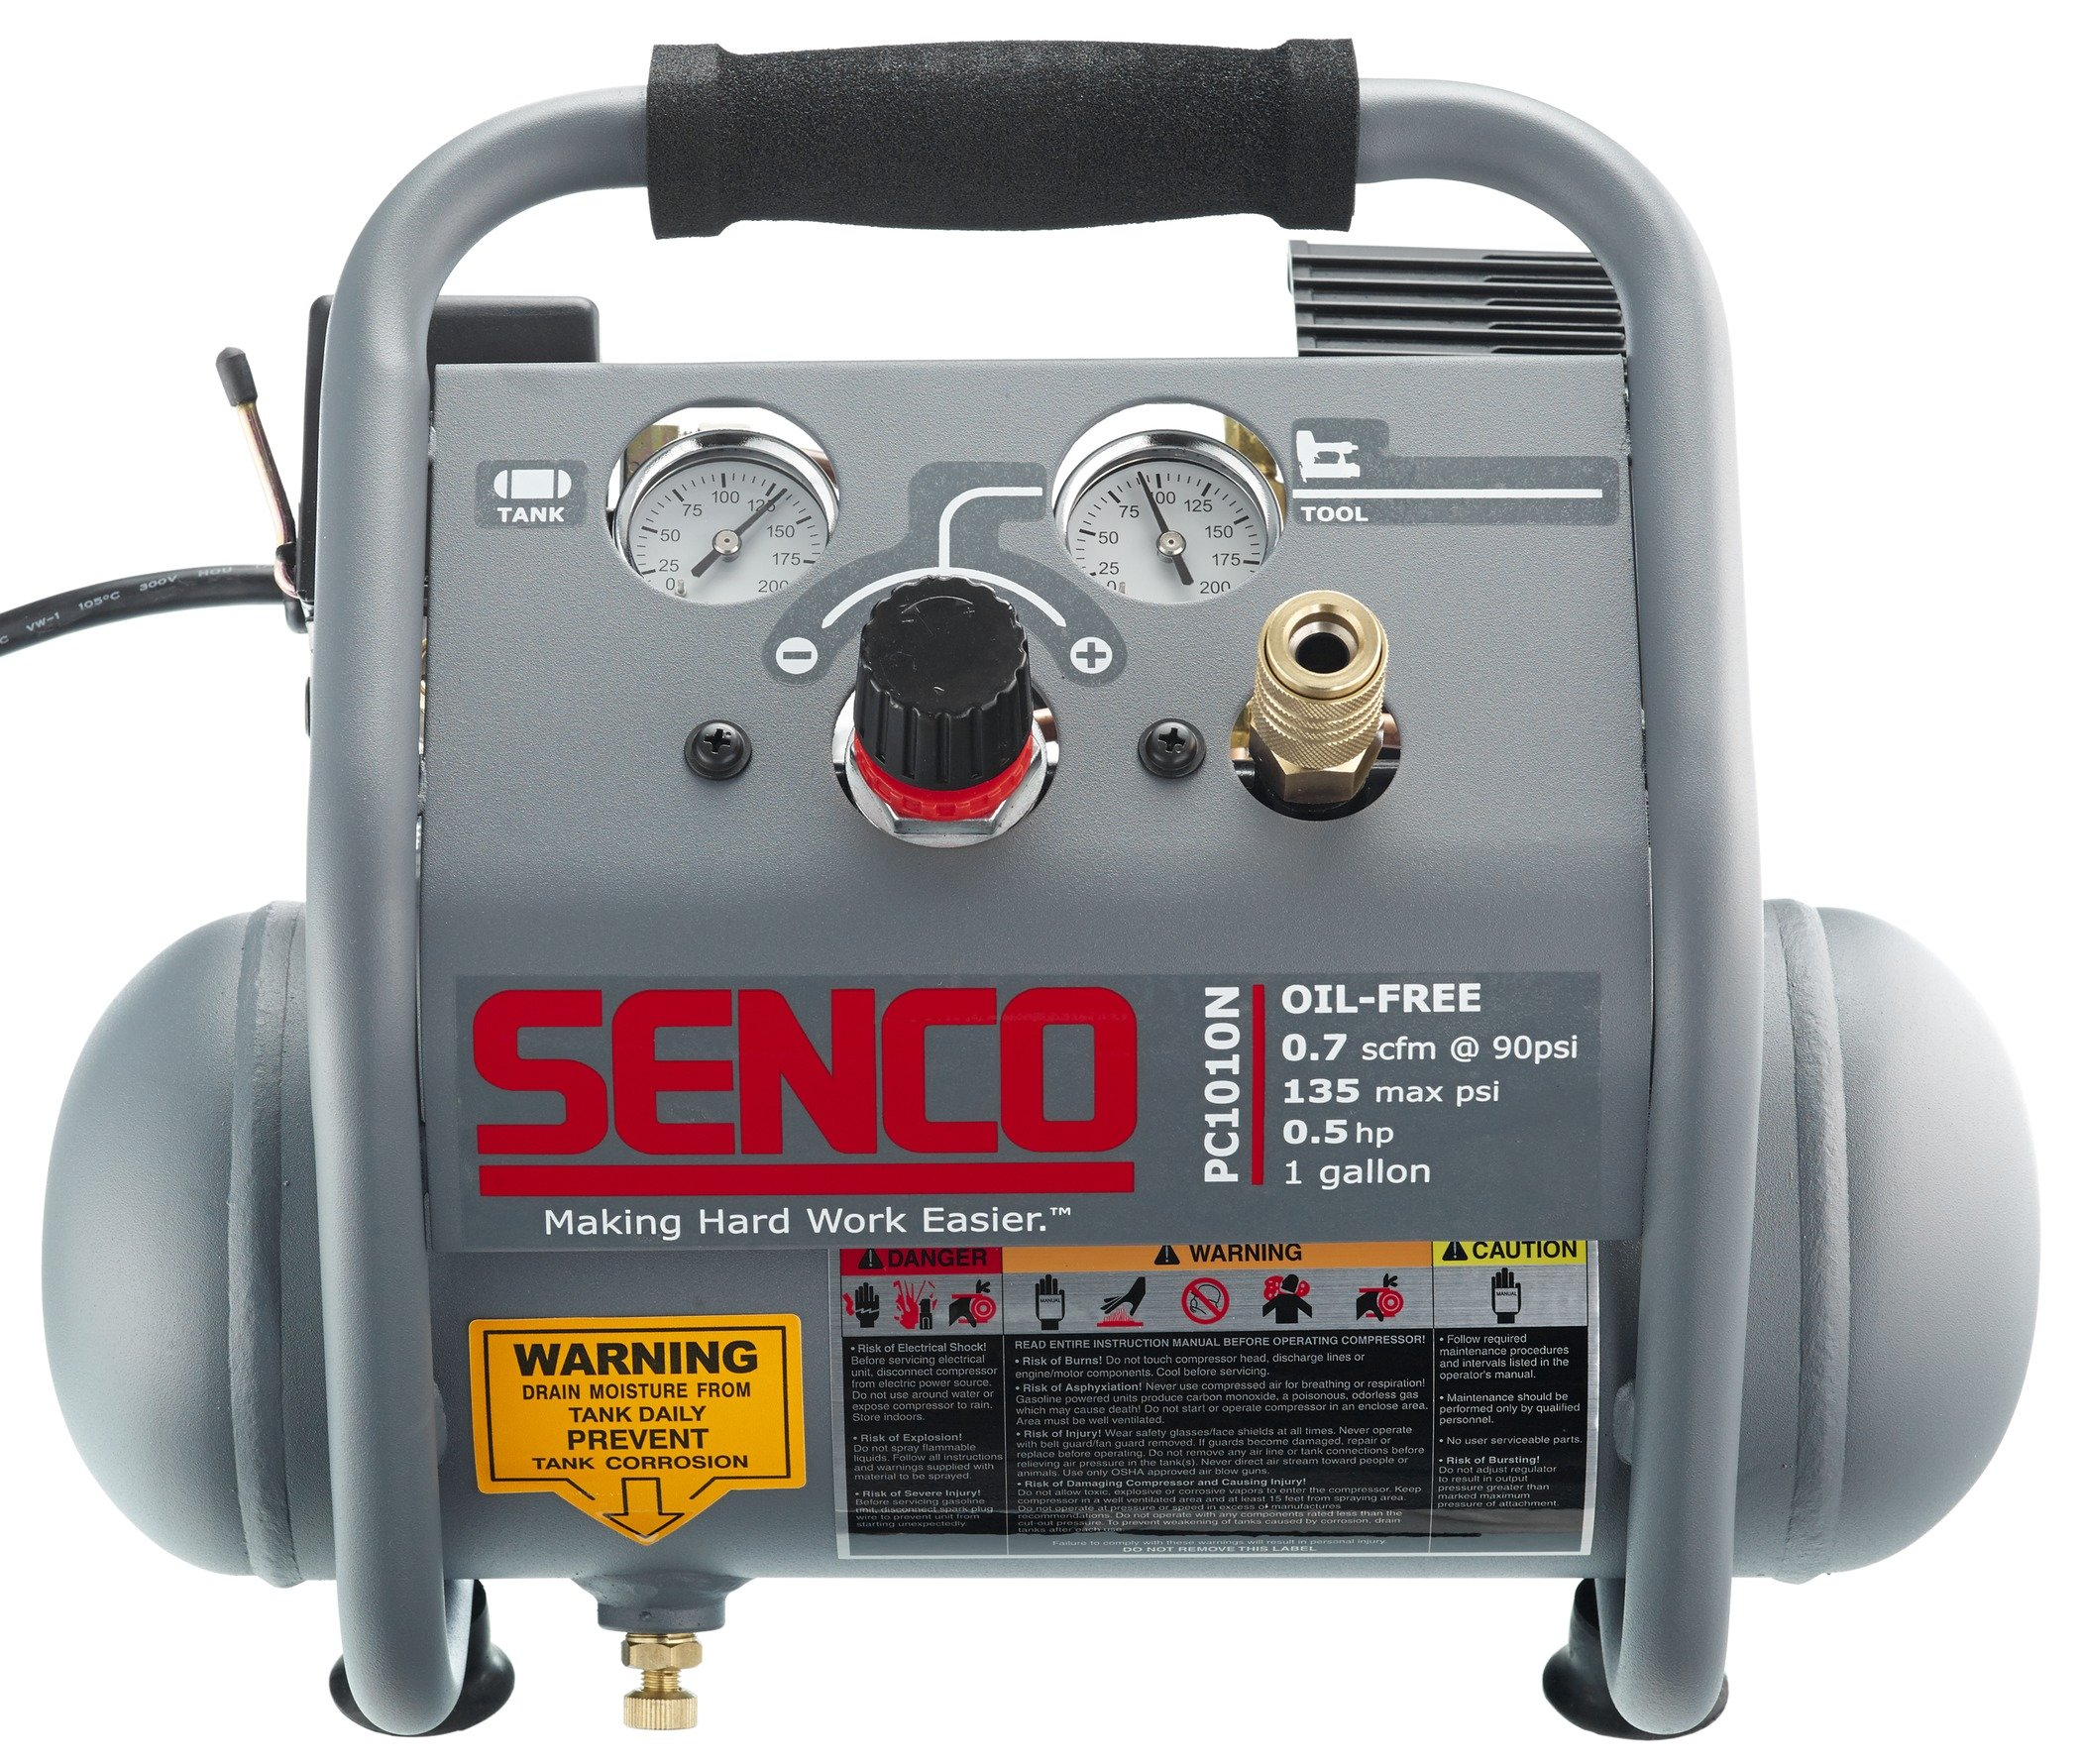 Senco PC1010N 1/2 hp Finish and Trim Portable Hot Dog Compressor, 1 gallon, Grey by Senco (Image #1)